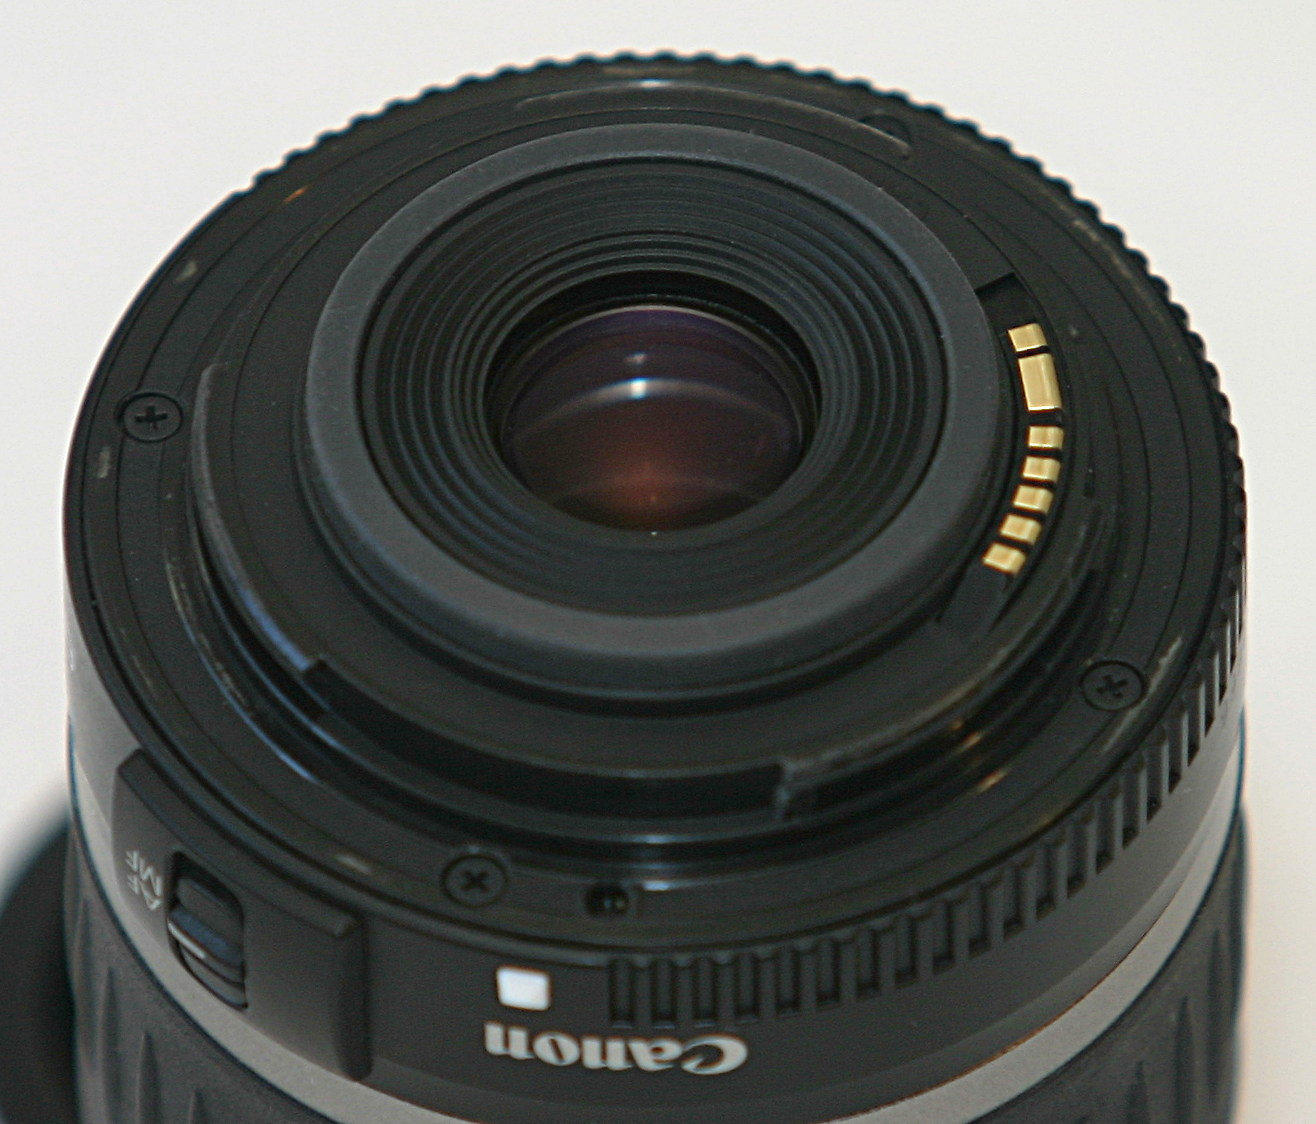 File:Canon EF-S lens mount.jpg - Wikipedia, the free encyclopedia